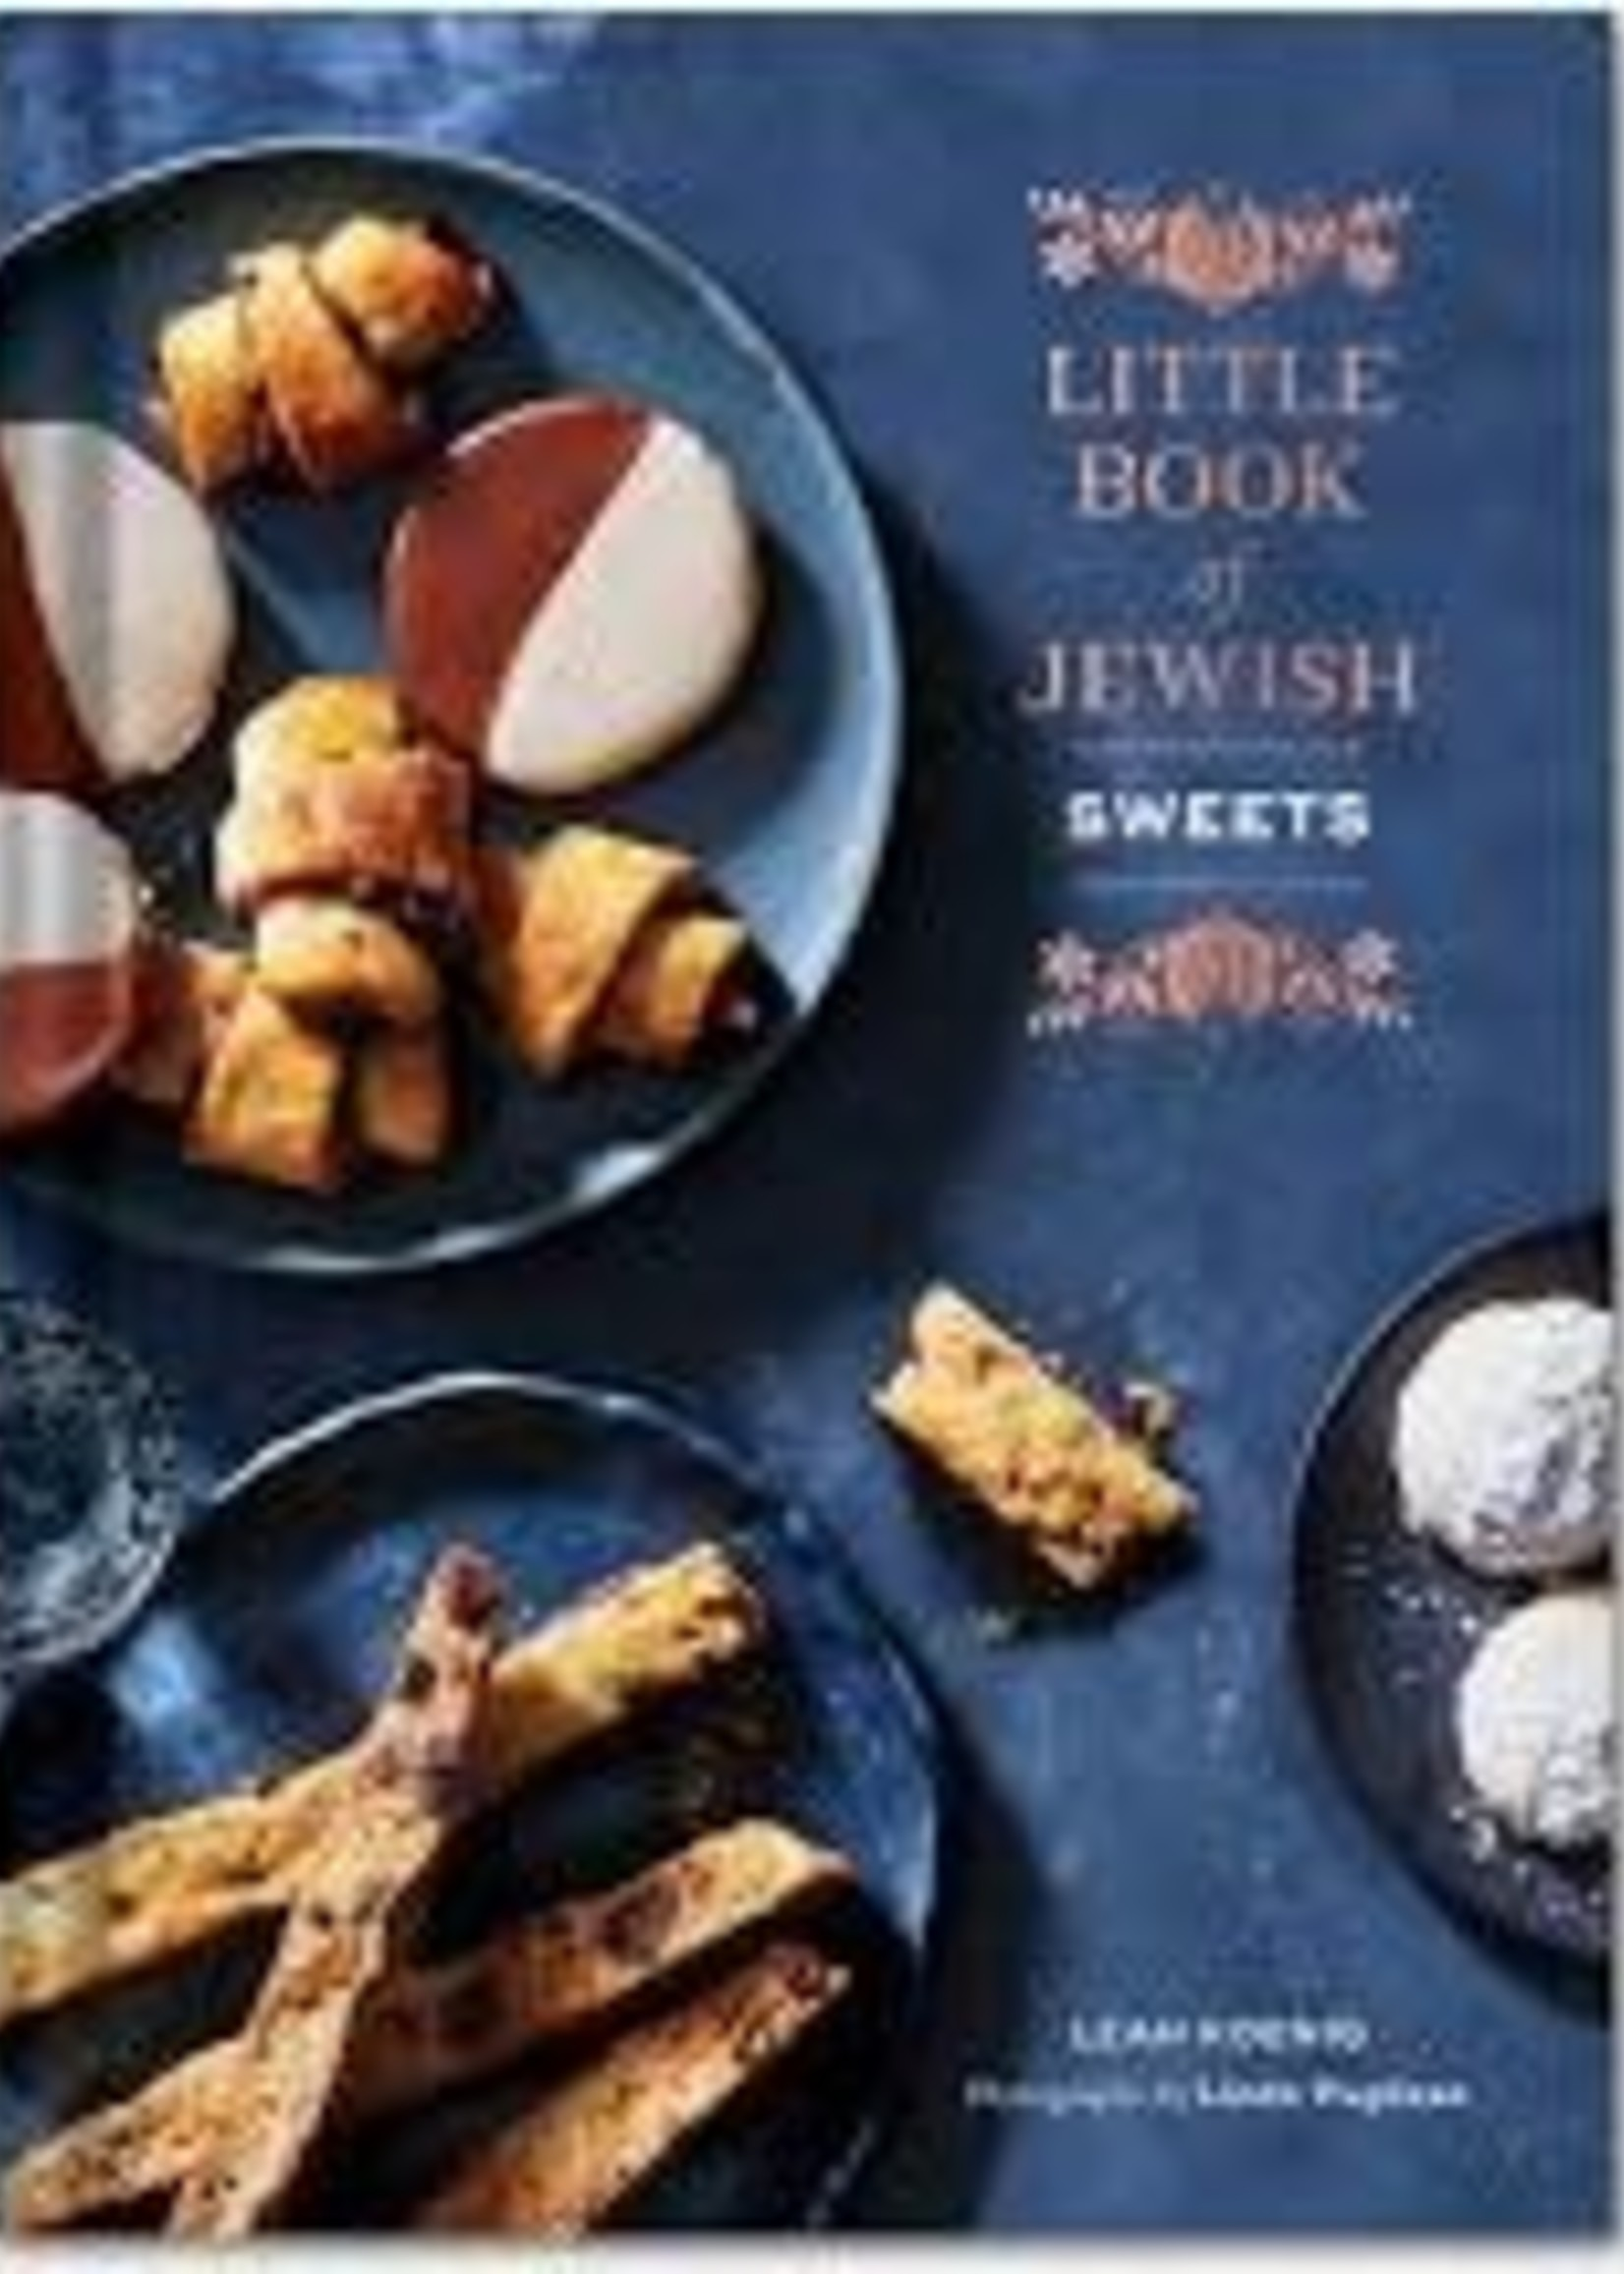 CHRONICLE BOOKS LITTLE BOOK OF JEWISH SWEETS